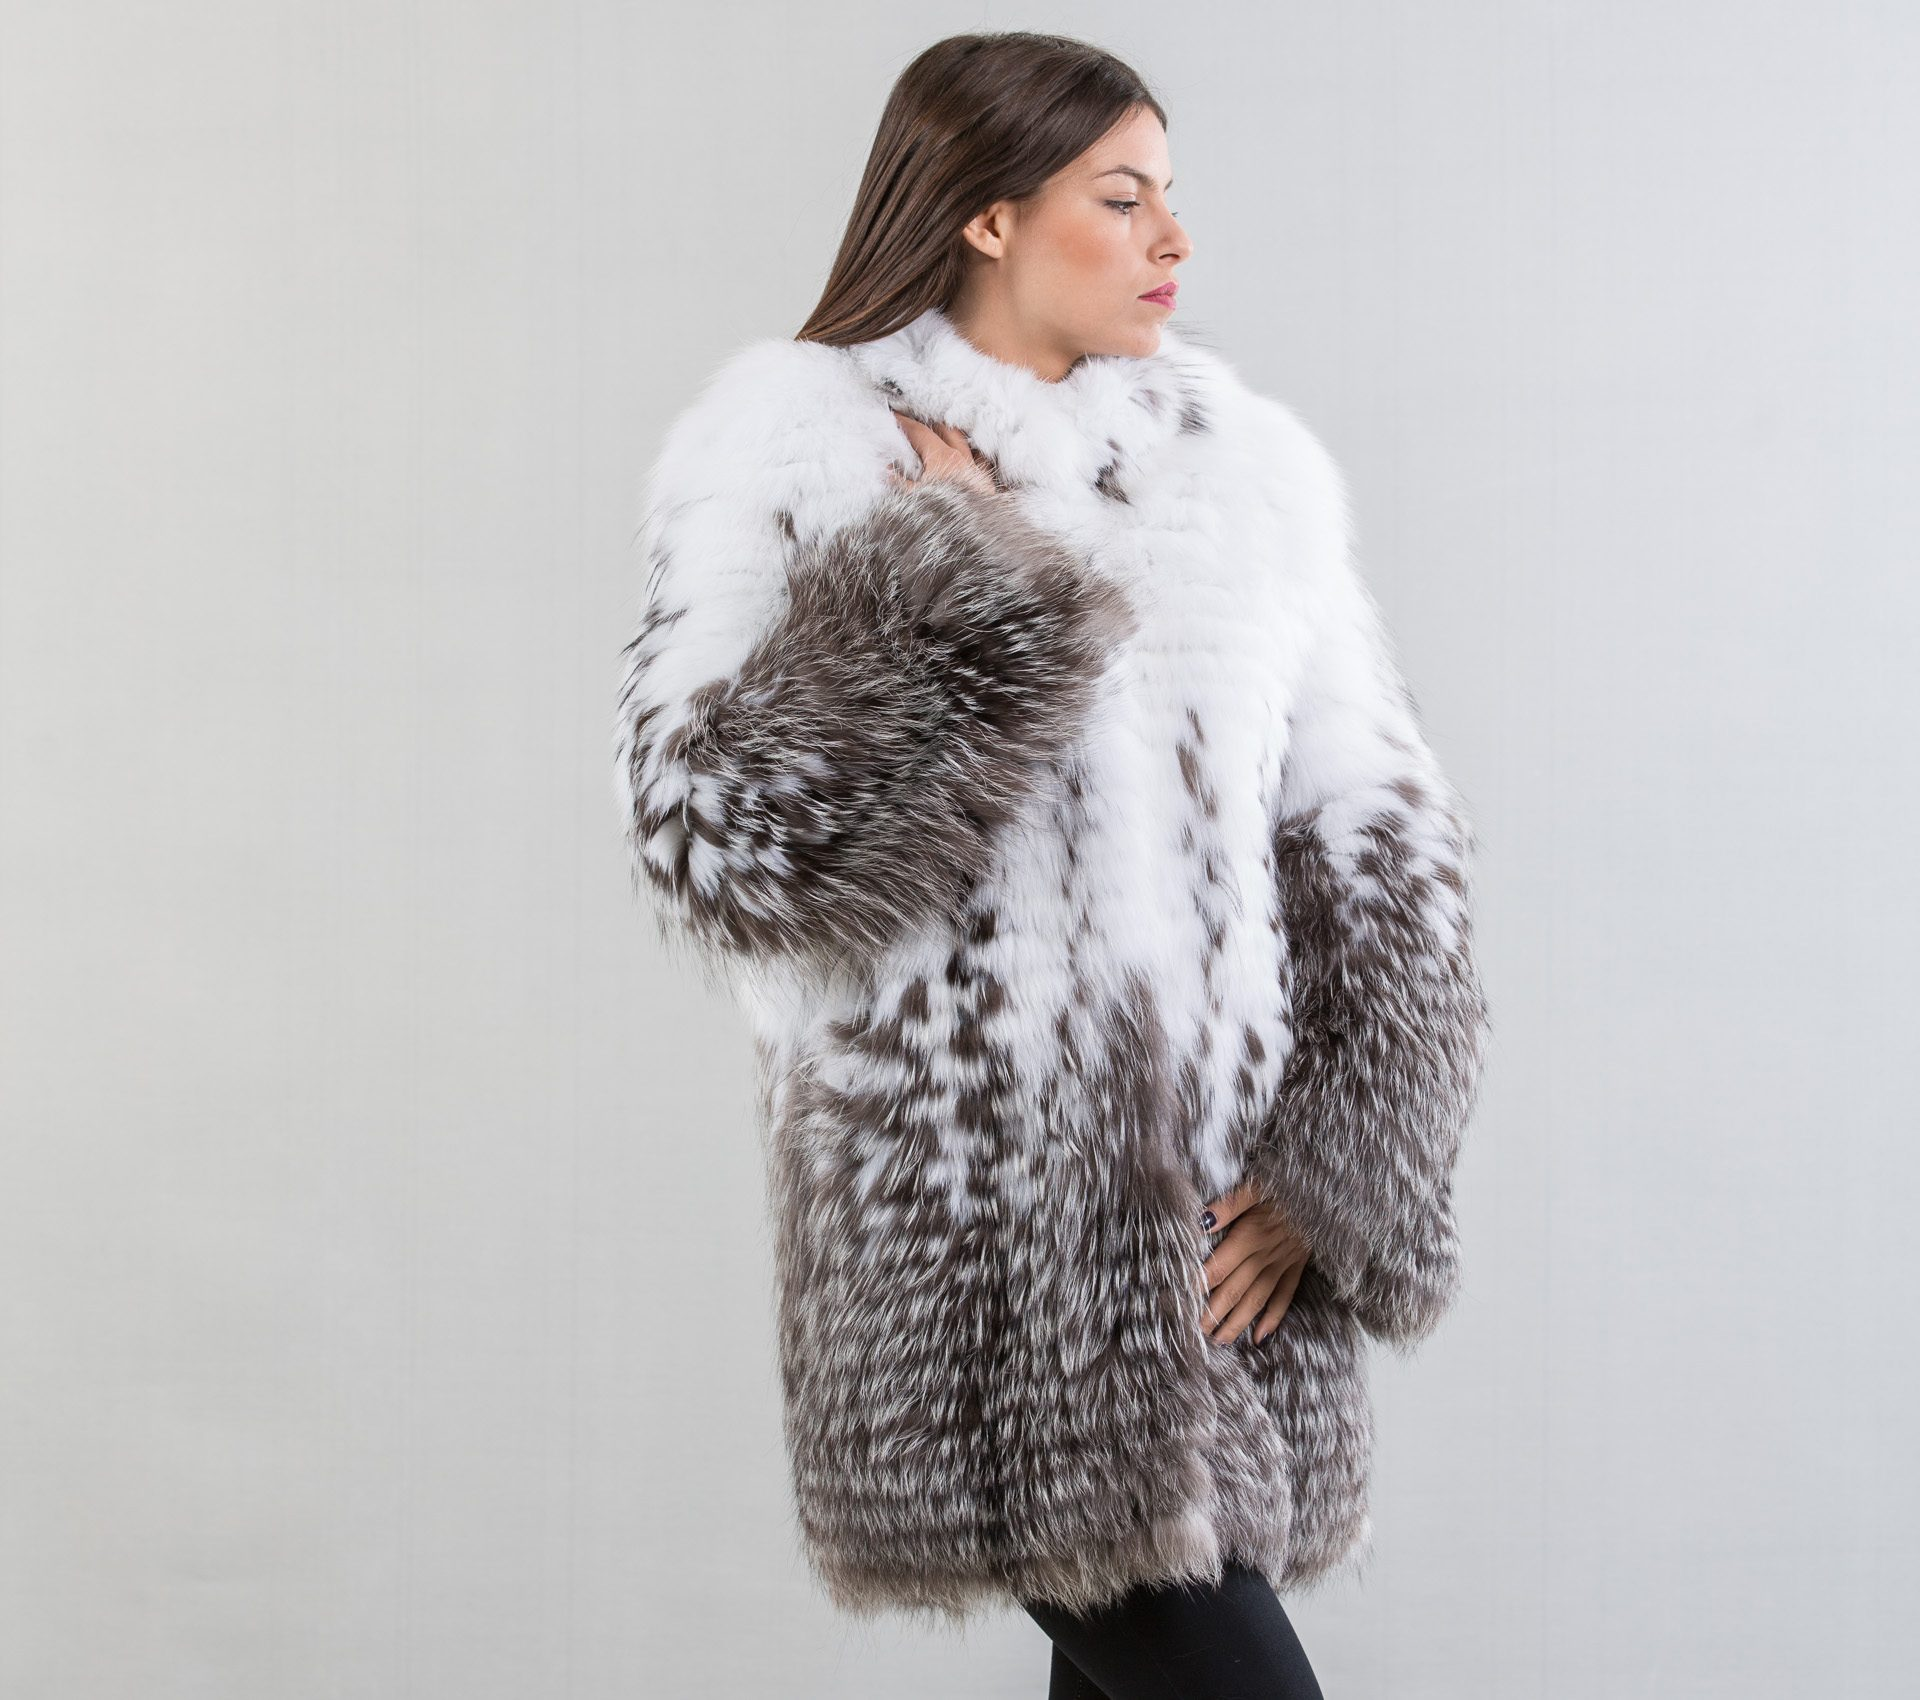 White fox fur - photo#12